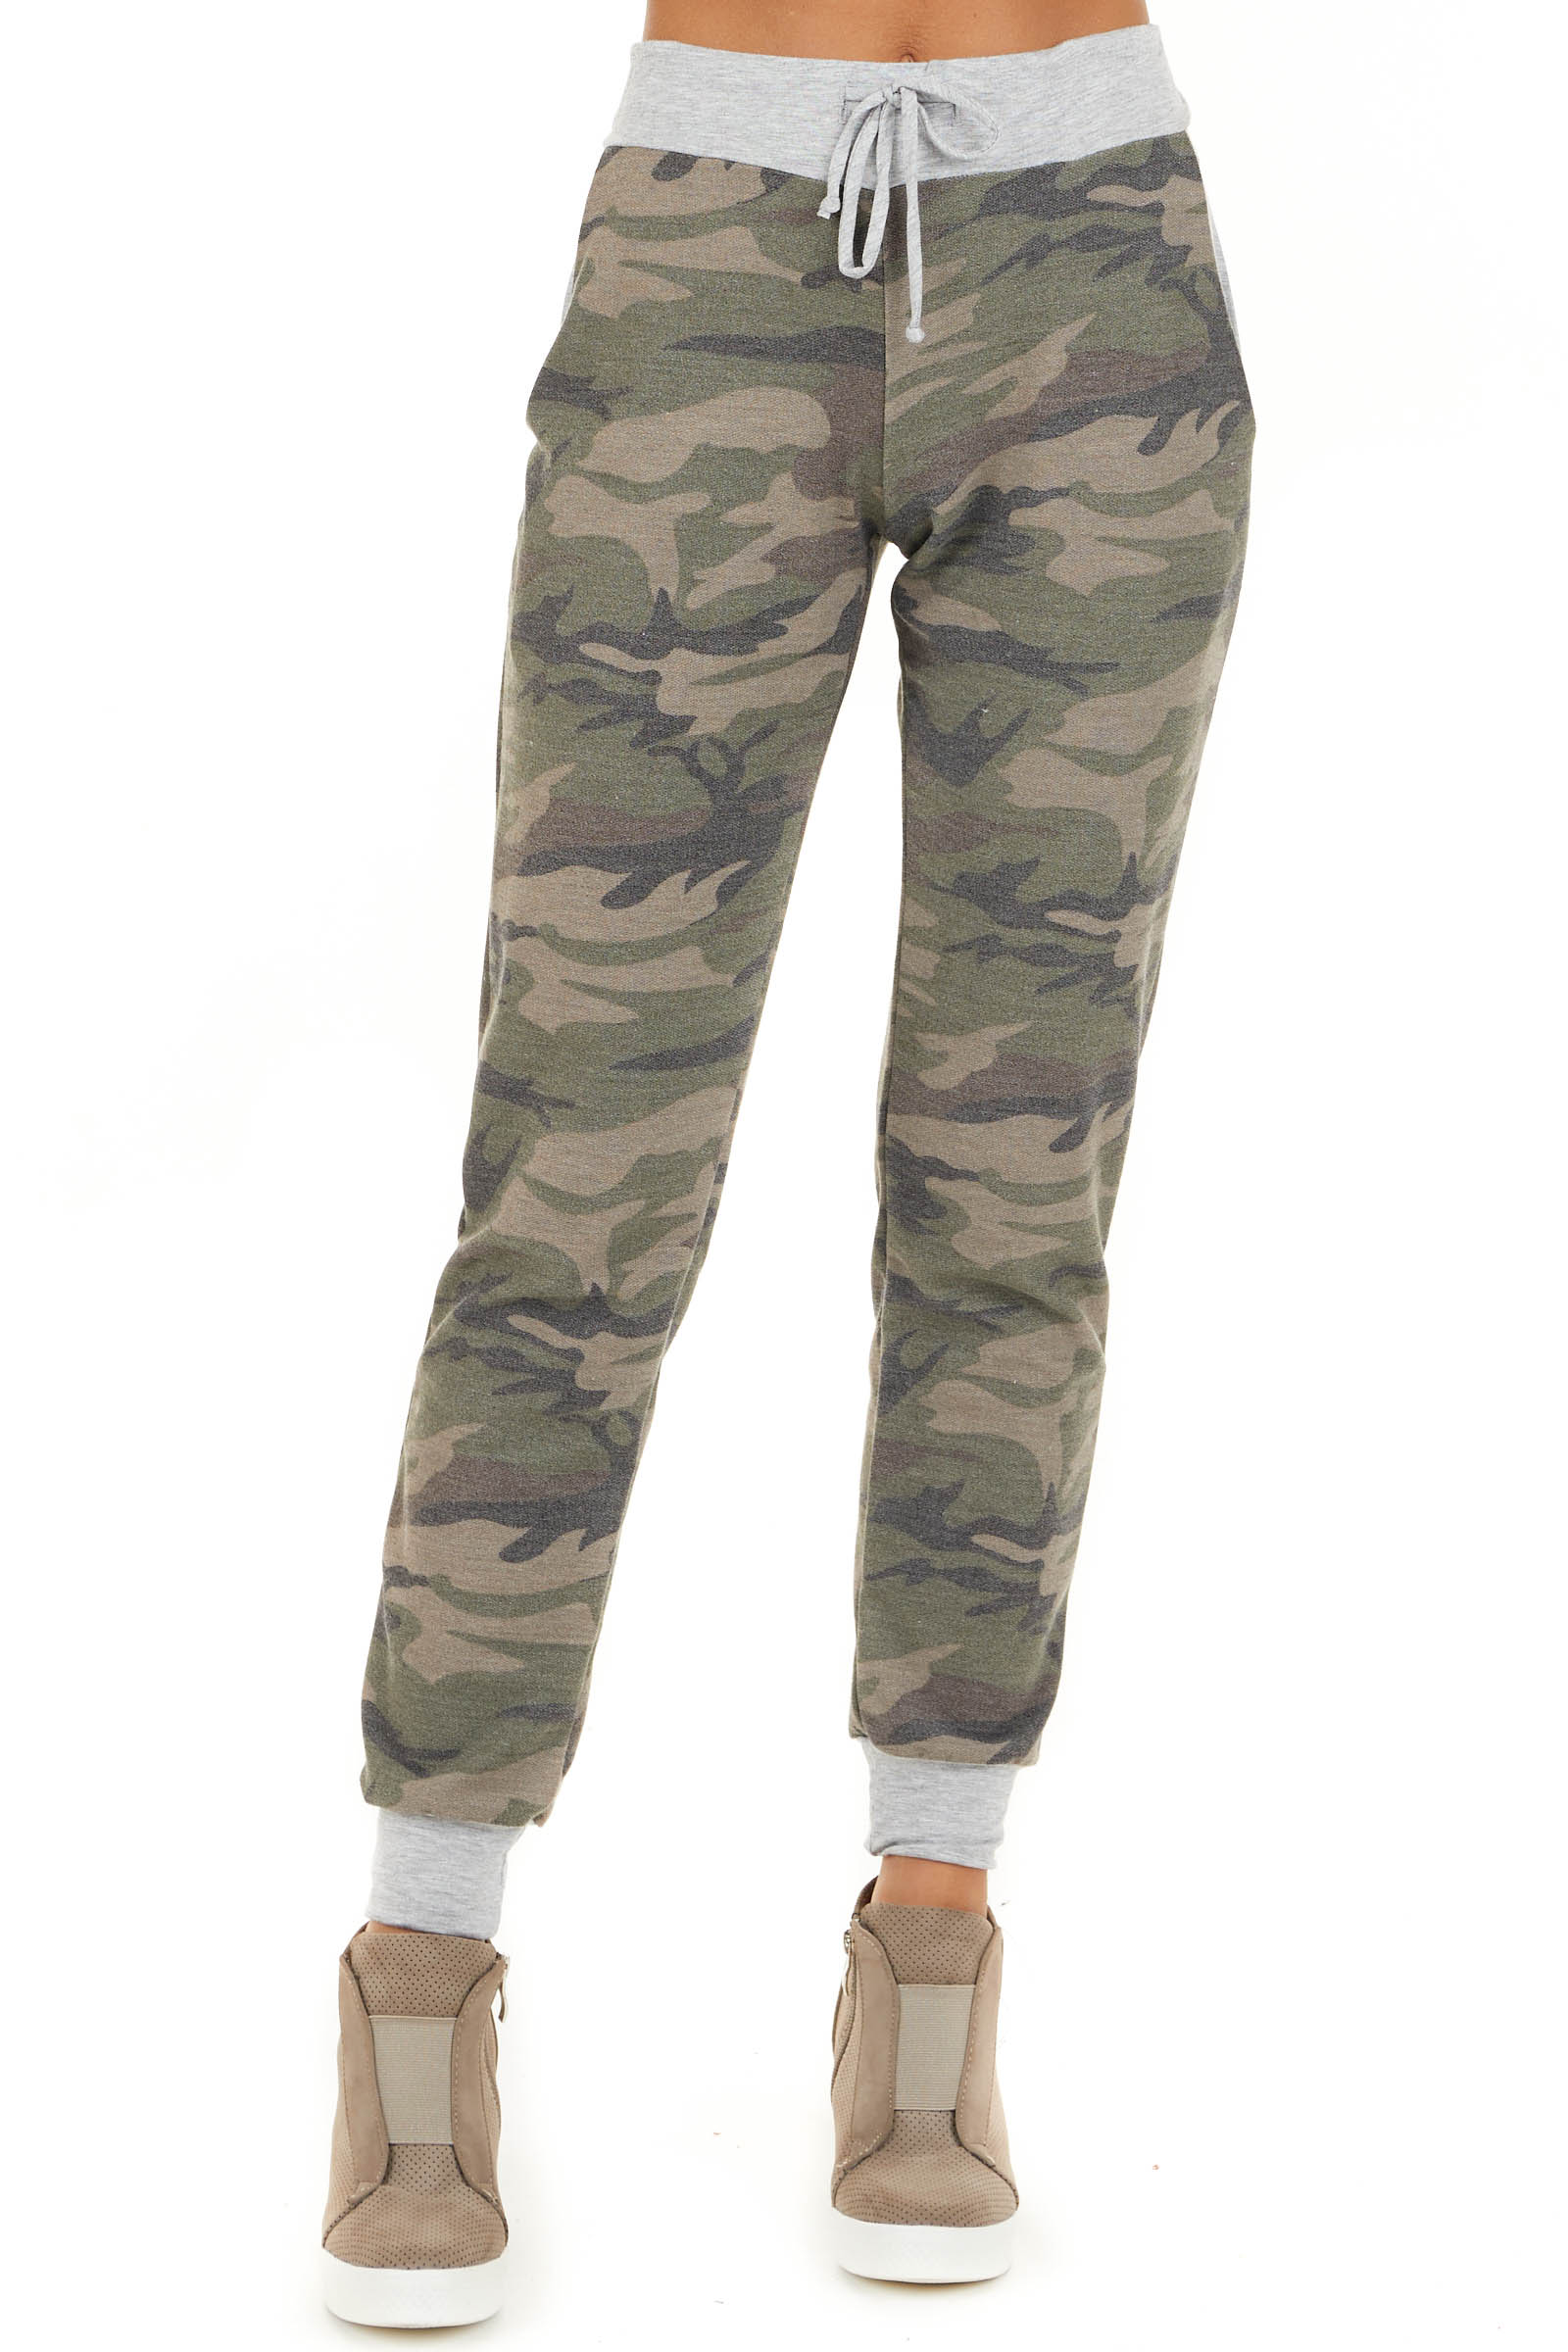 Olive Camo Print Jogger Pants with Drawstring and Pockets front view